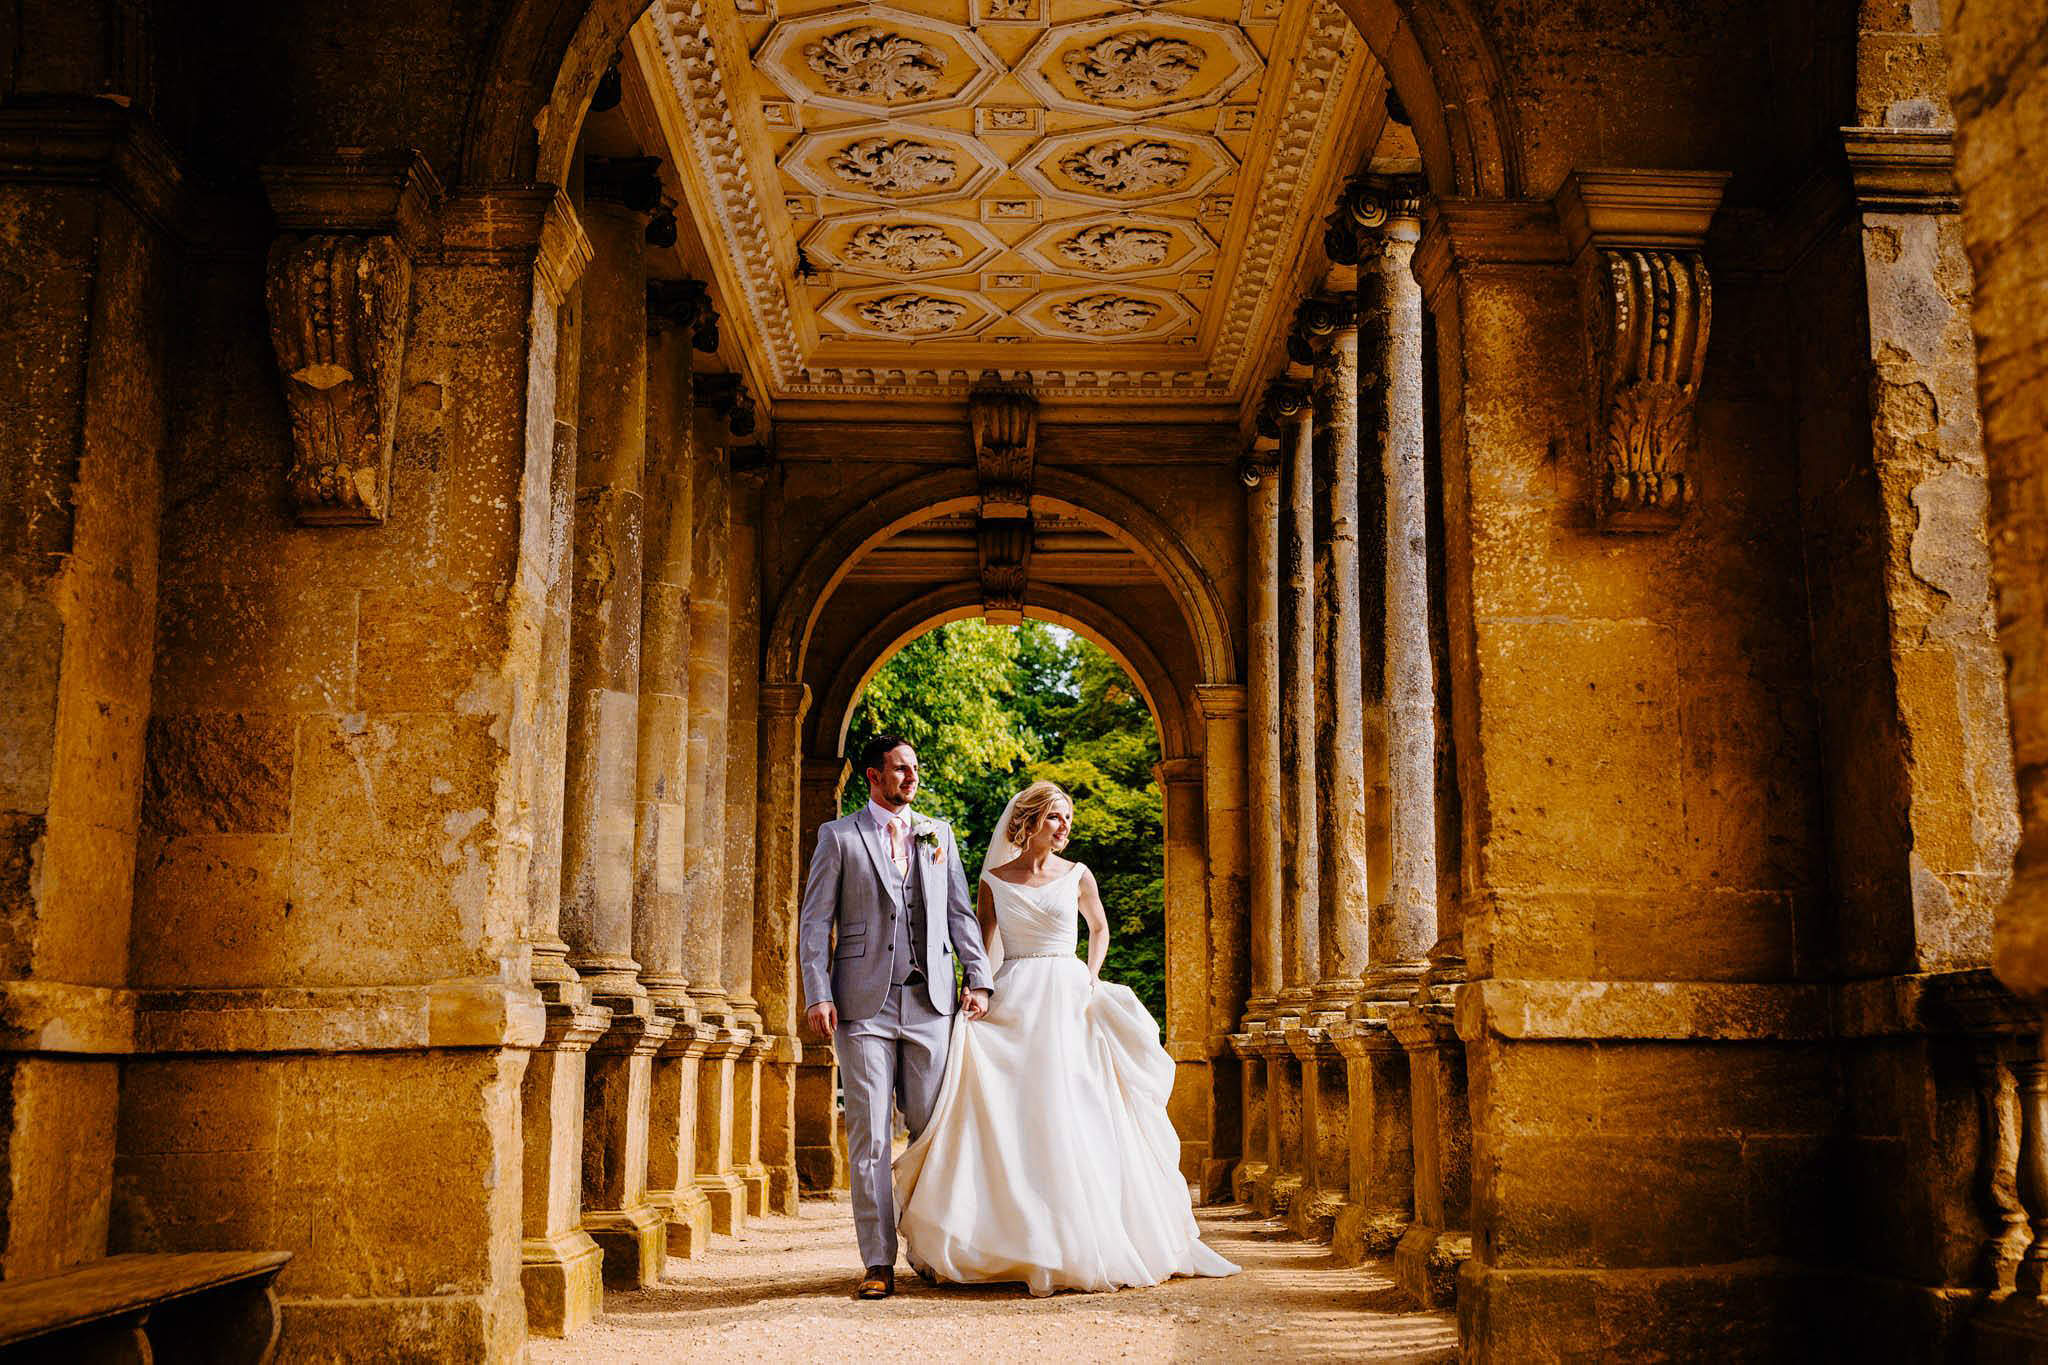 a bride and groom in beautiful surroundings